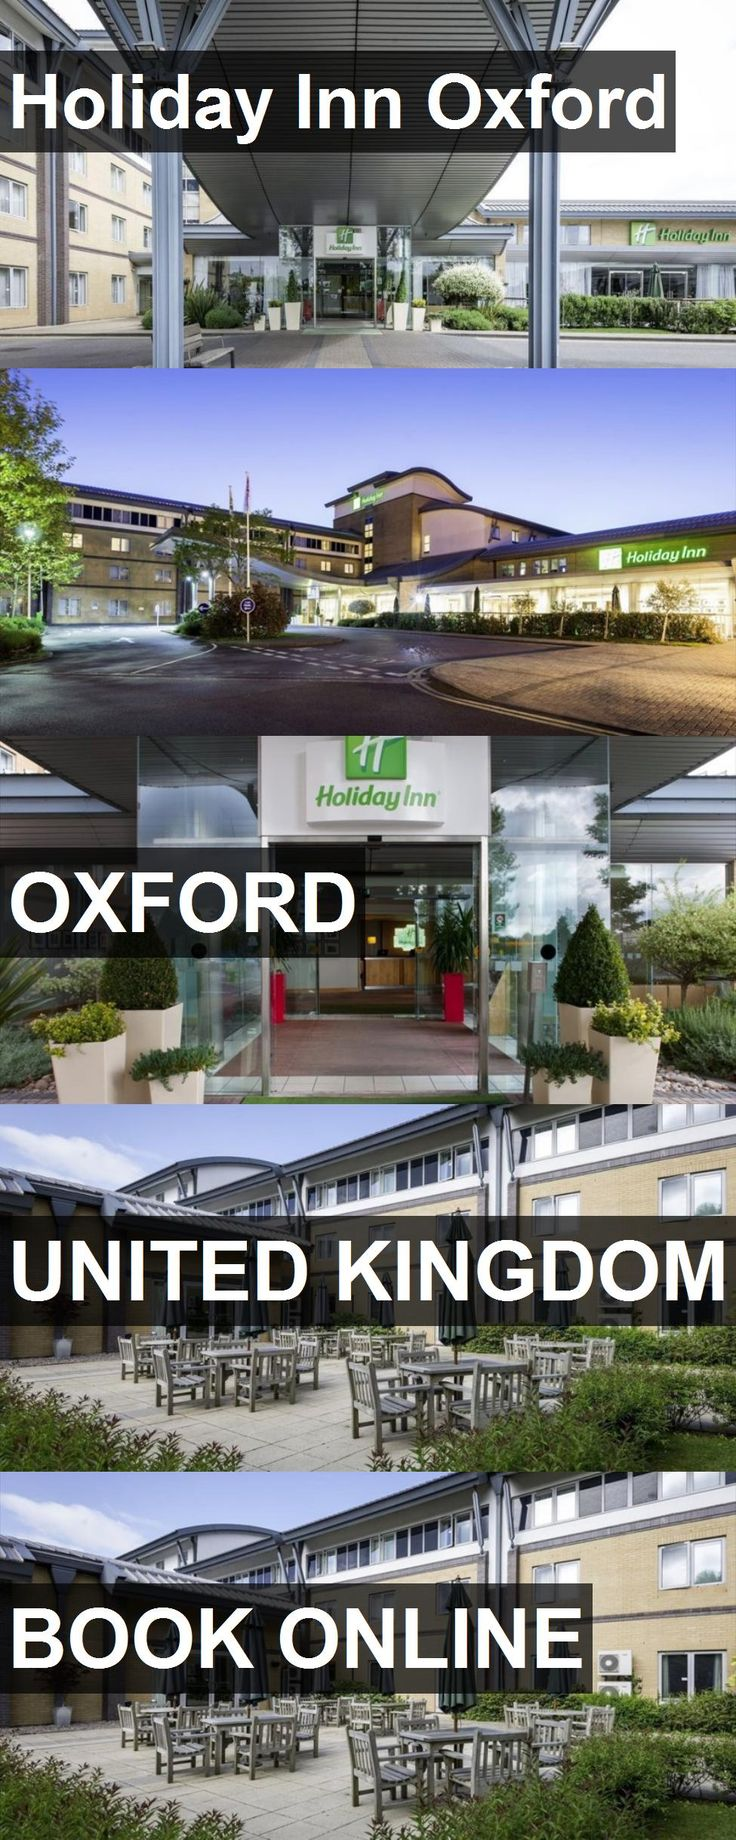 Hotel Holiday Inn Oxford in Oxford, United Kingdom. For more information, photos, reviews and best prices please follow the link. #UnitedKingdom #Oxford #travel #vacation #hotel